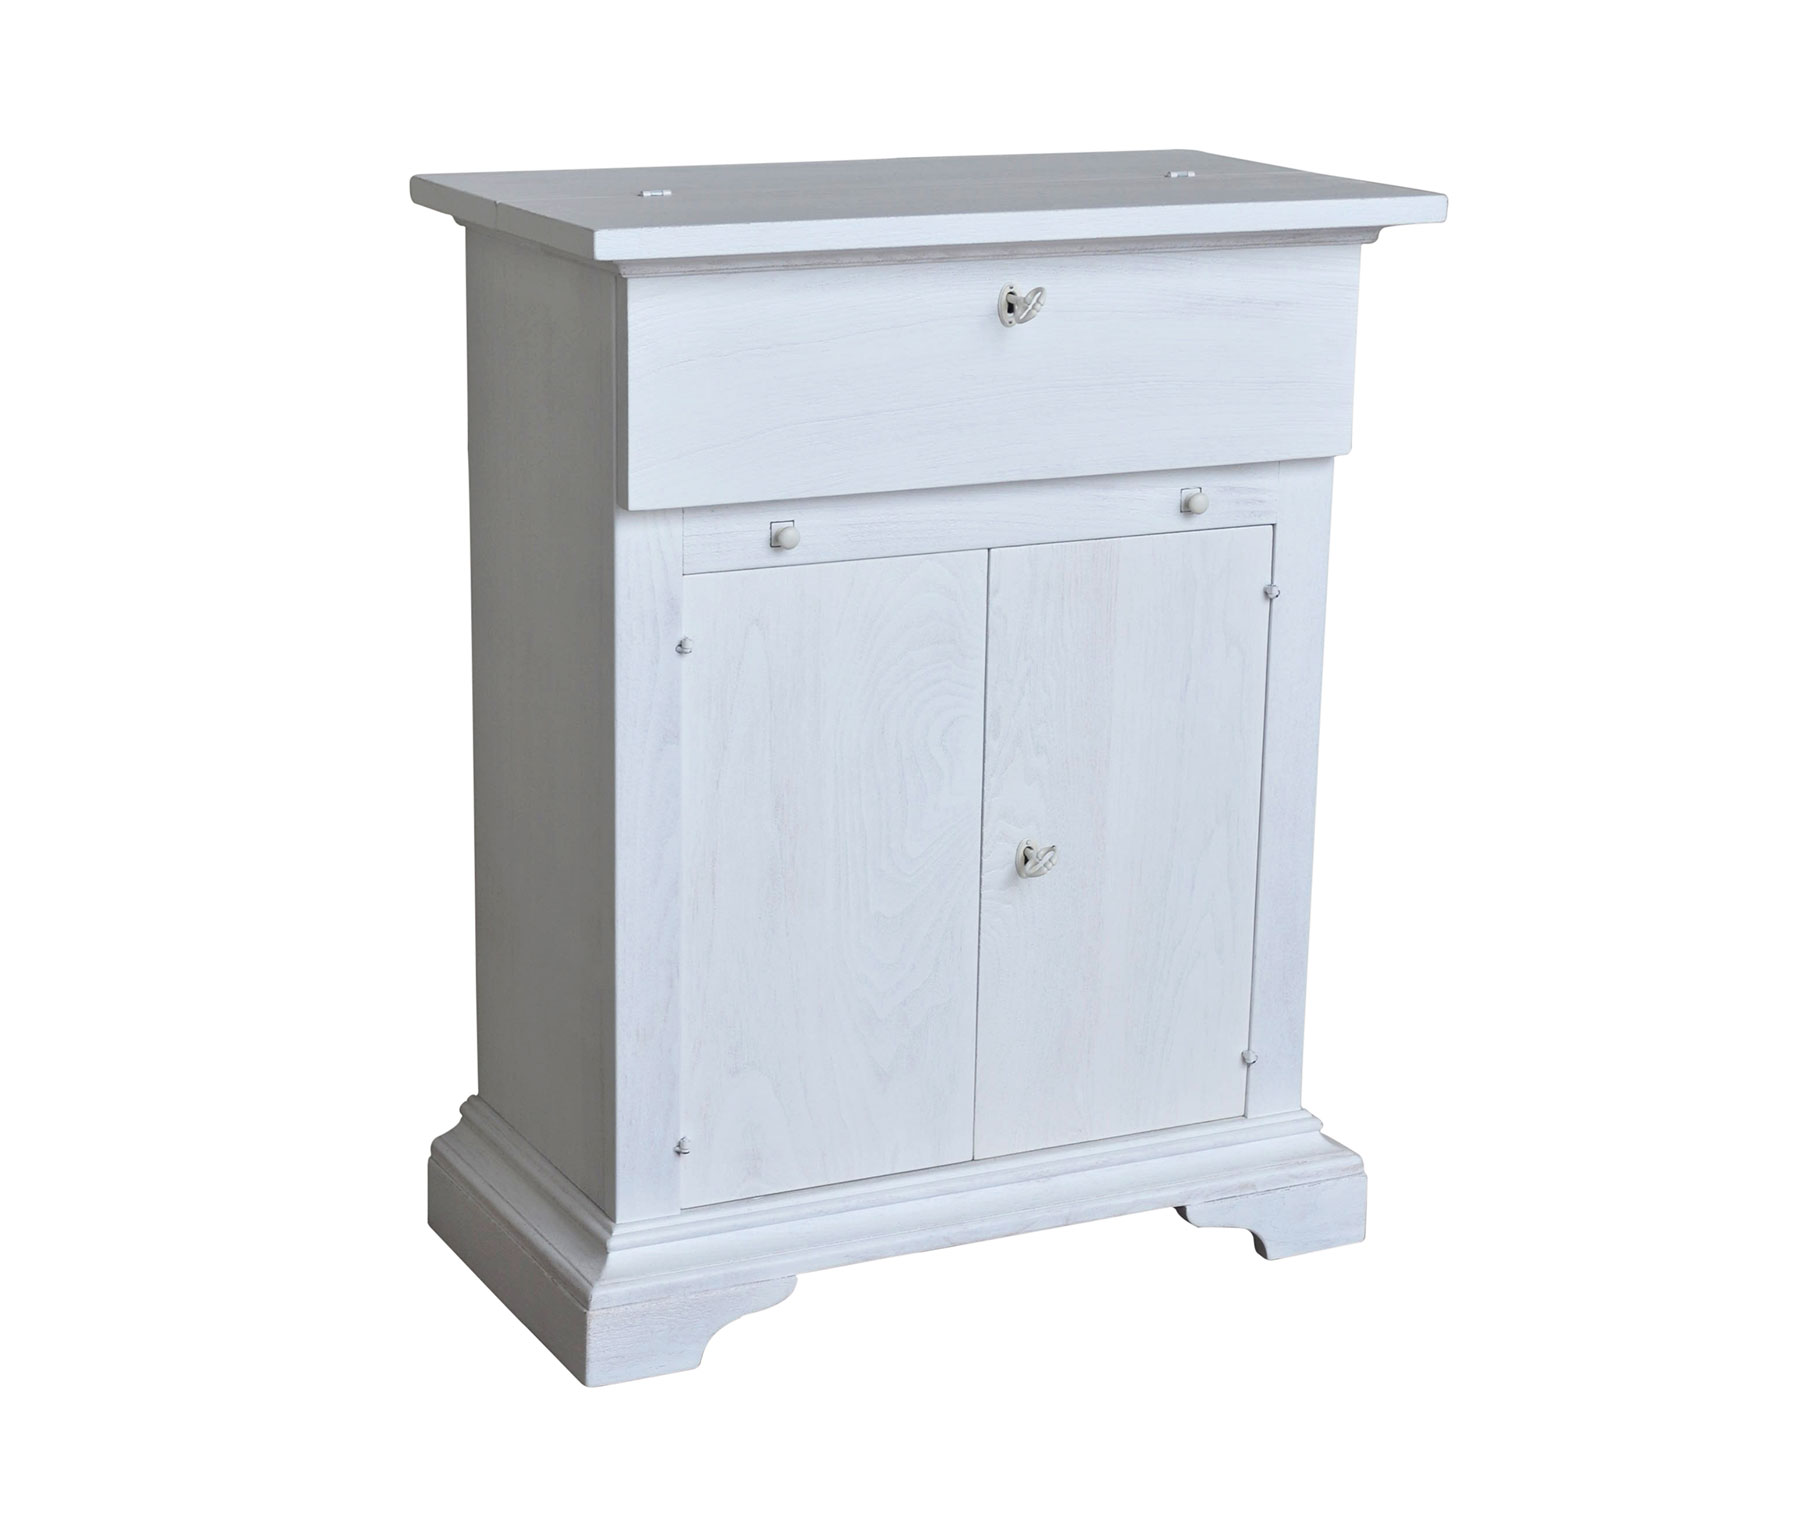 Outlet mobiletto 2ante shabby ct622b abcmobili - Mobiletto cucina shabby ...